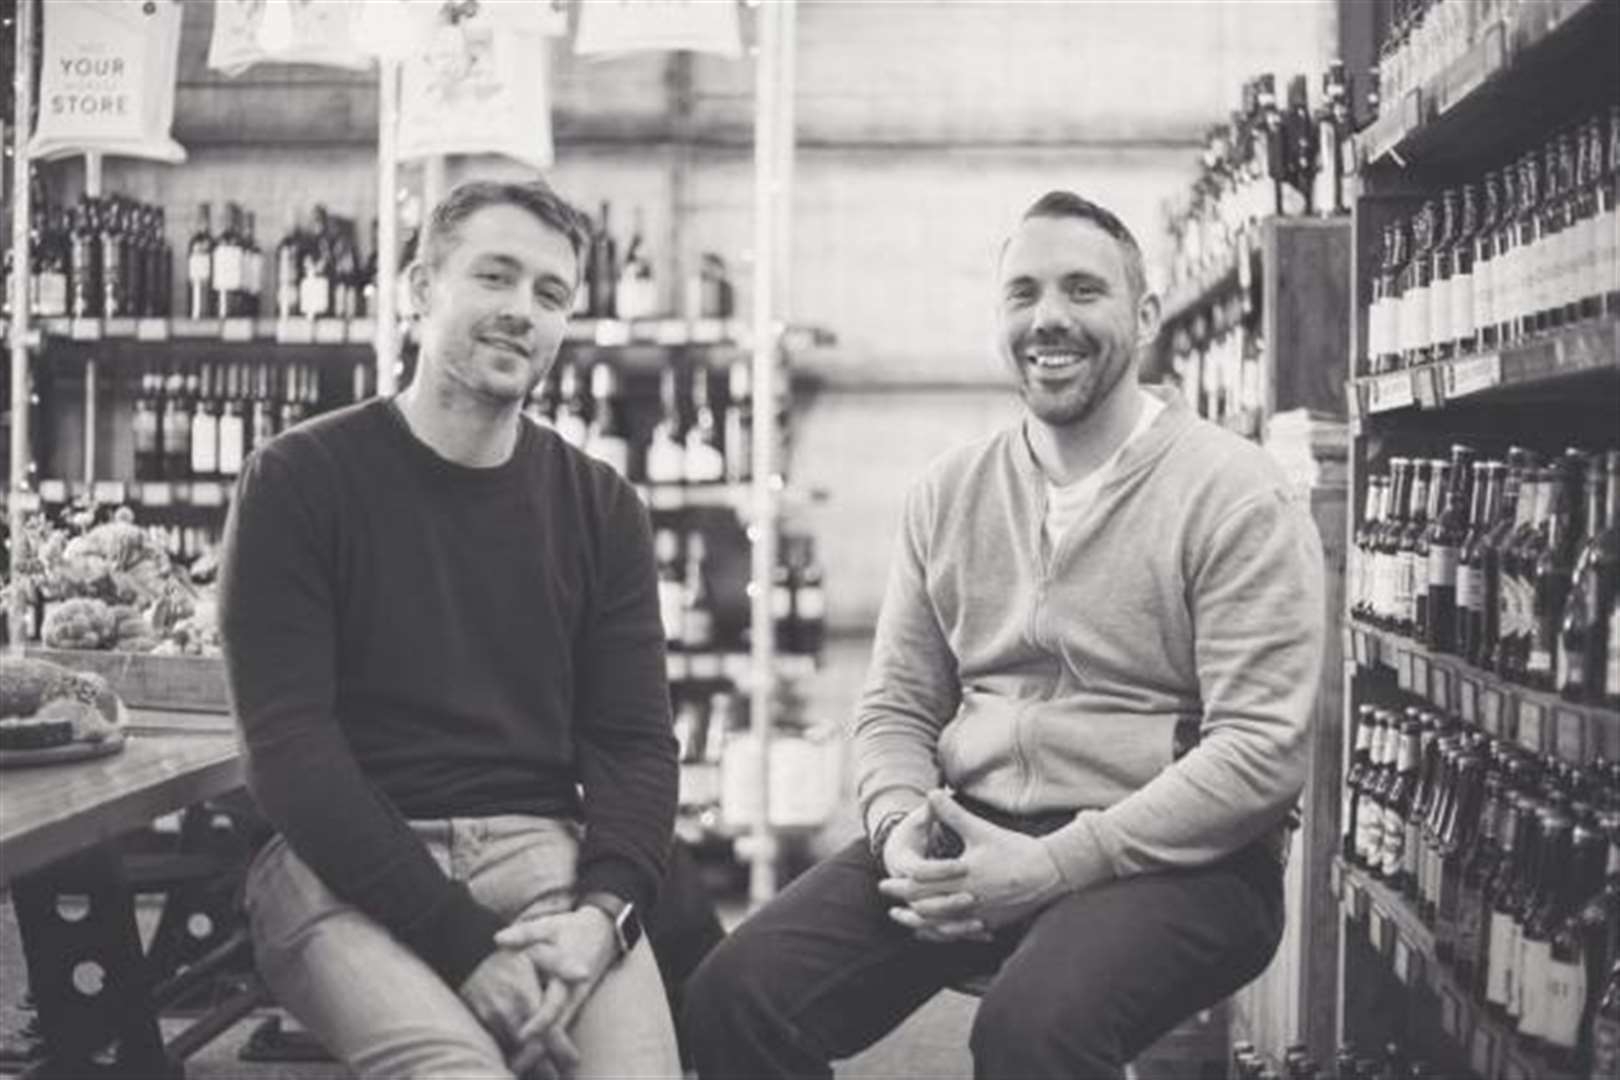 Eat 17: The former Birchwood boy bringing Borough Market under a roof to Stortford